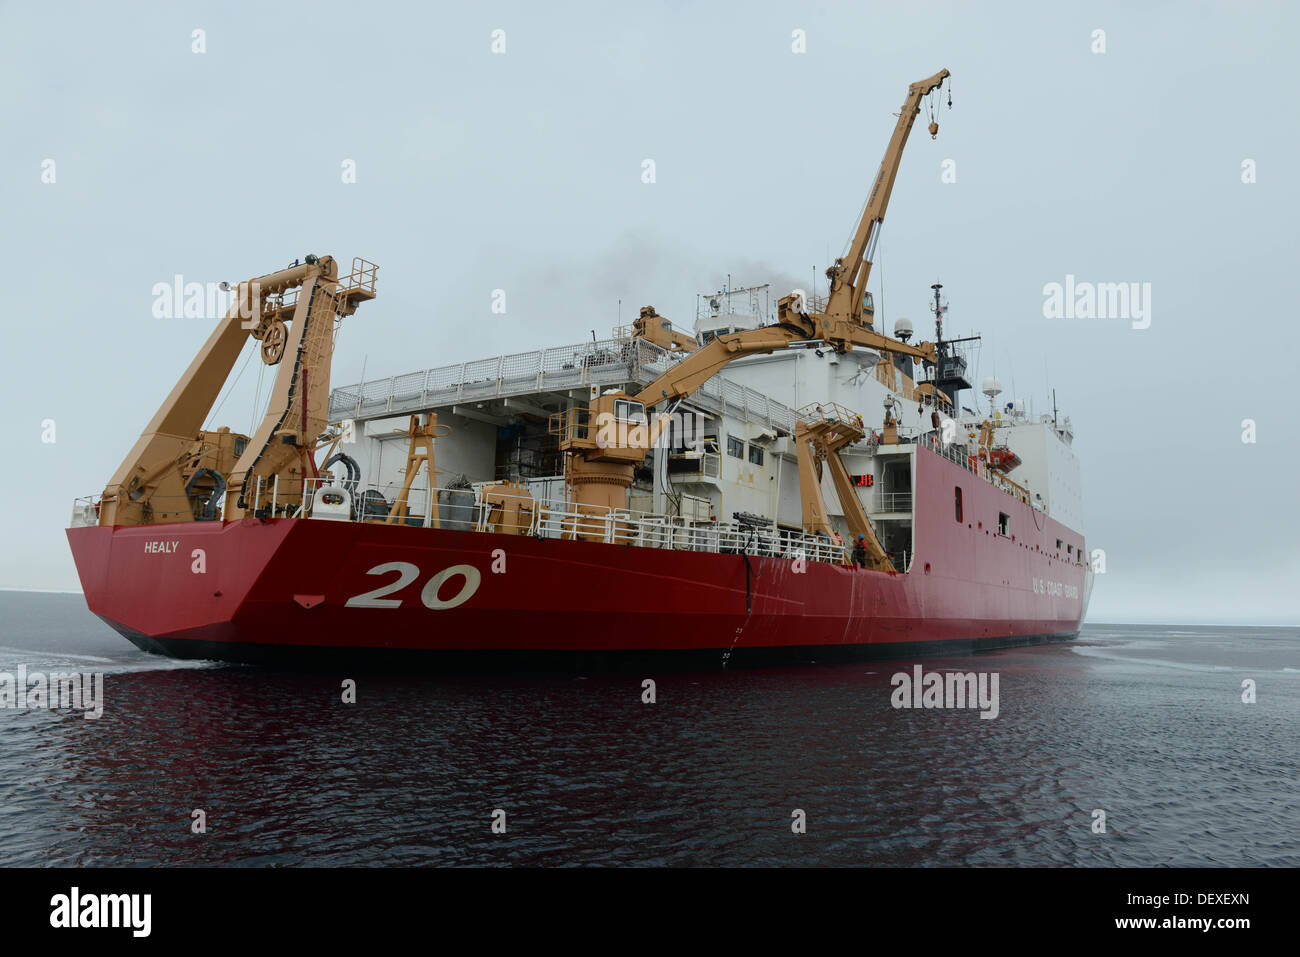 The Coast Guard Cutter Healy operates in the Arctic Ocean, Sept. 12, 2013. The cutter's crew is conducting a series of science missions above the Arctic Circle in conjunction with Arctic Shield 2013. - Stock Image